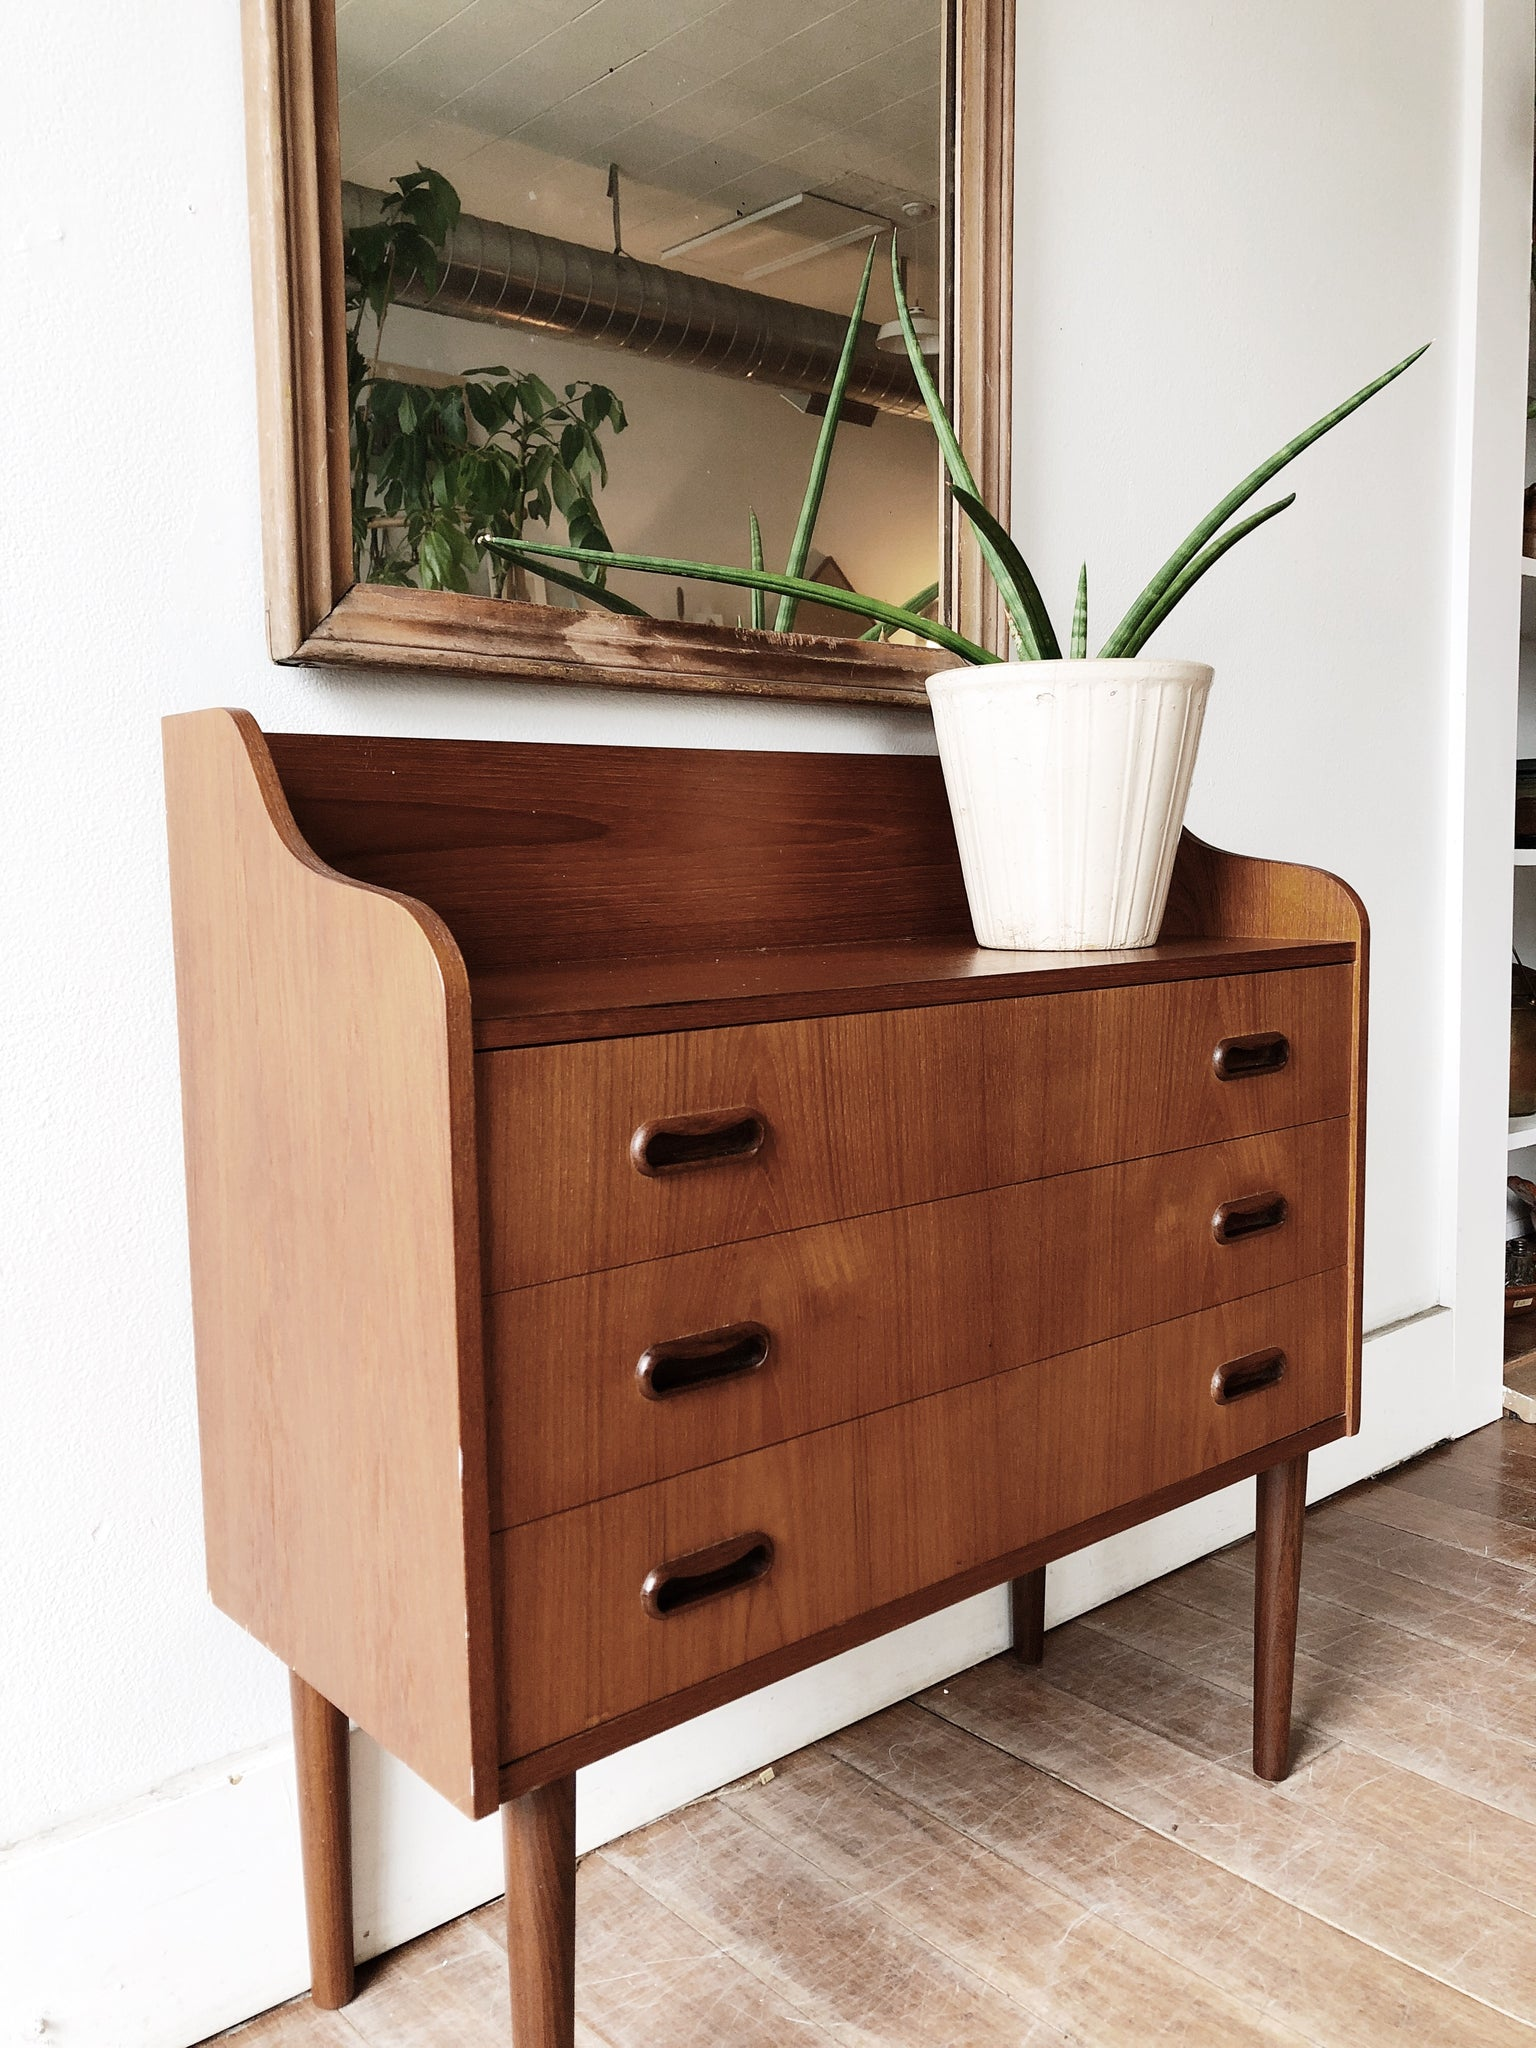 Vintage Danish Modern Chest of Drawers